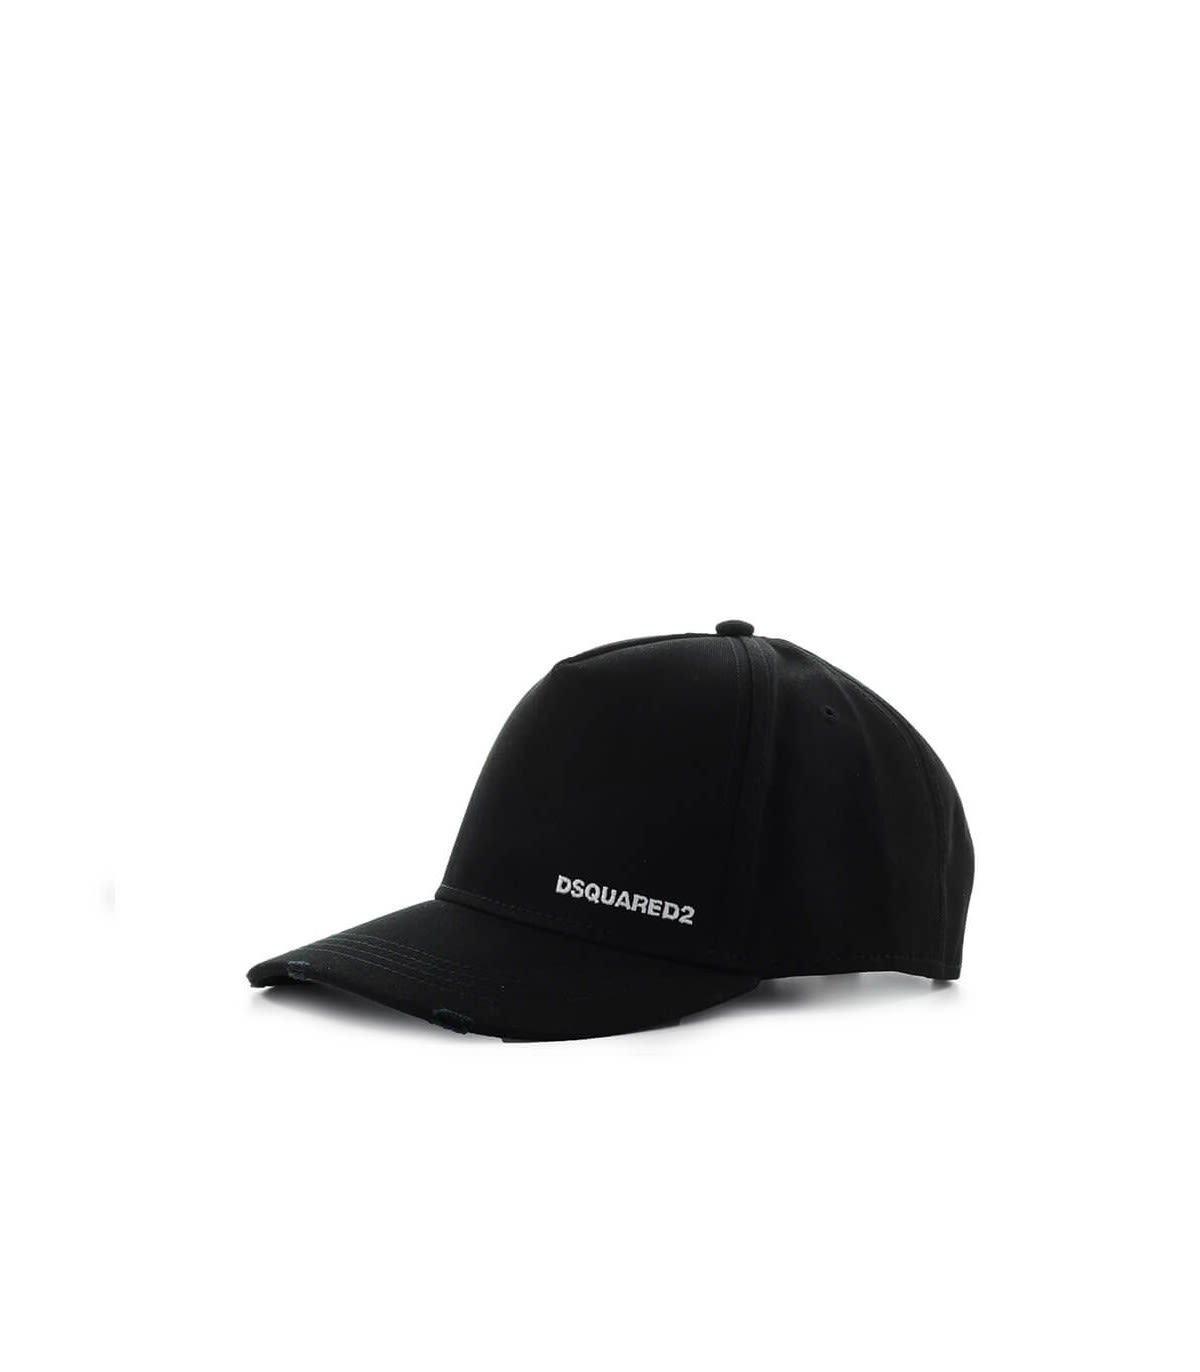 Dsquared2 Black Baseball Cap With Yellow Patch